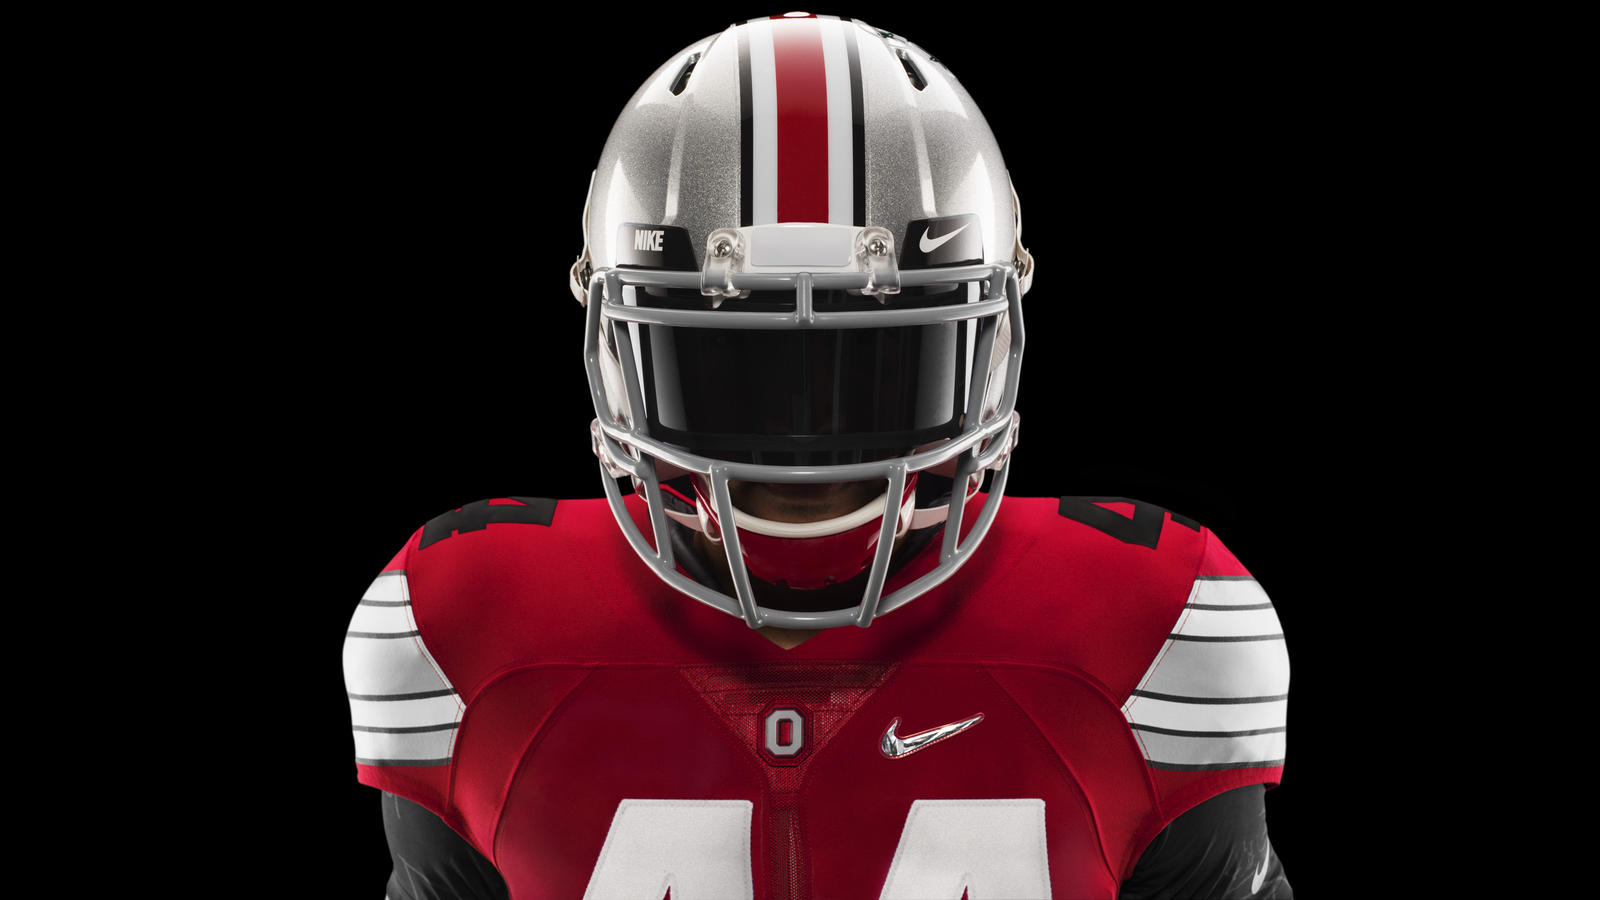 HO14_NFB_NCAA_Ohio_Uniform_1200